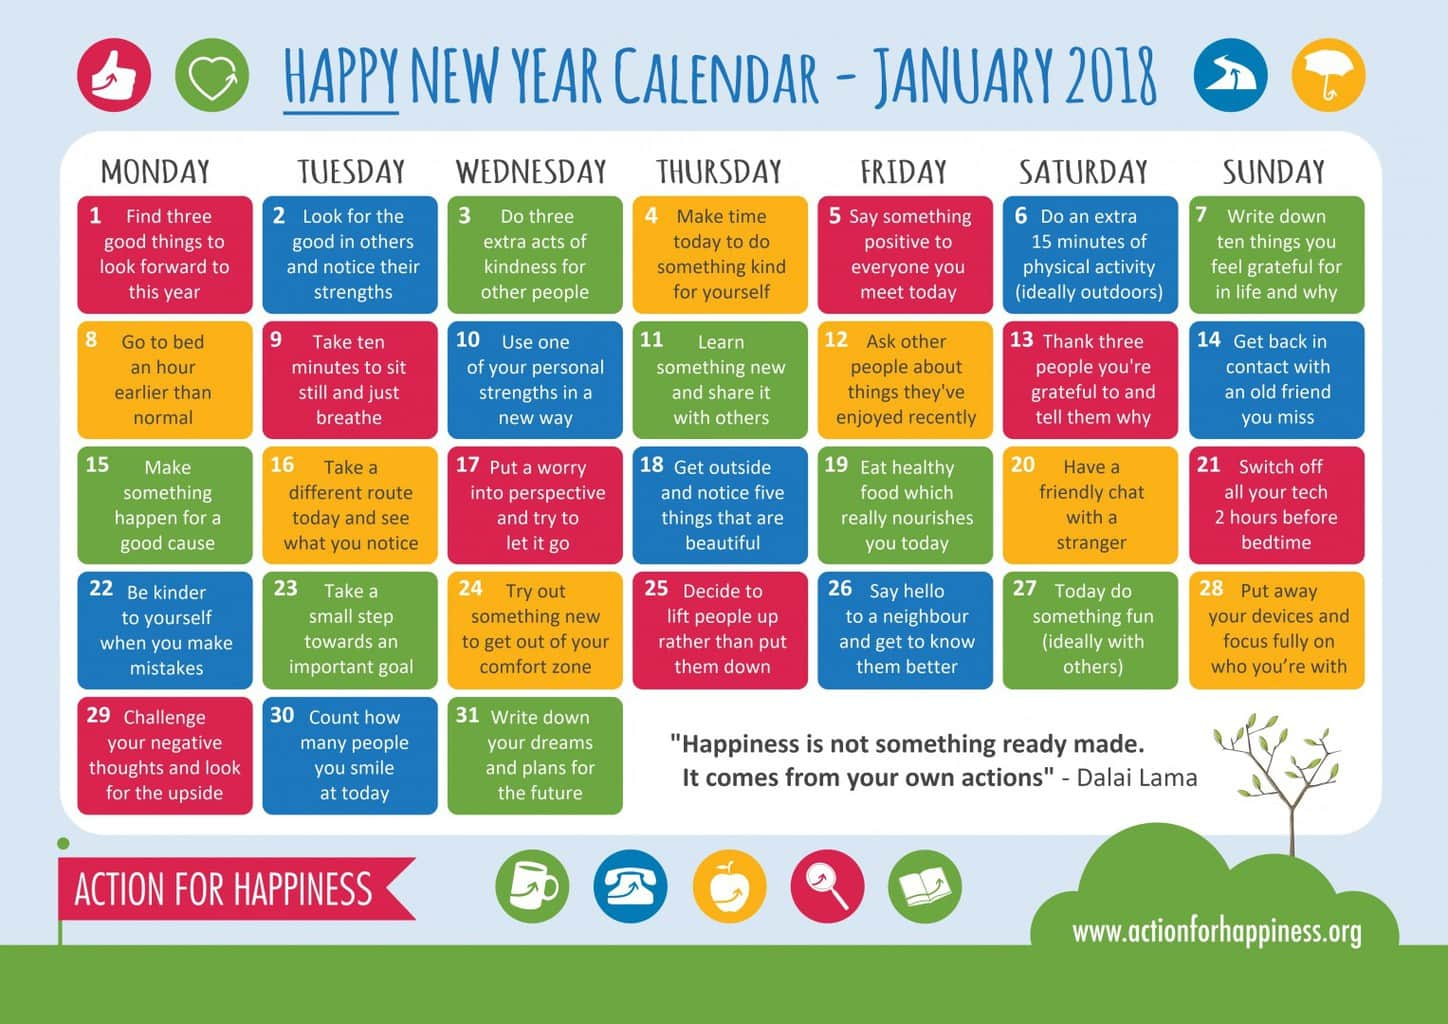 Happiness calendar Jan 18